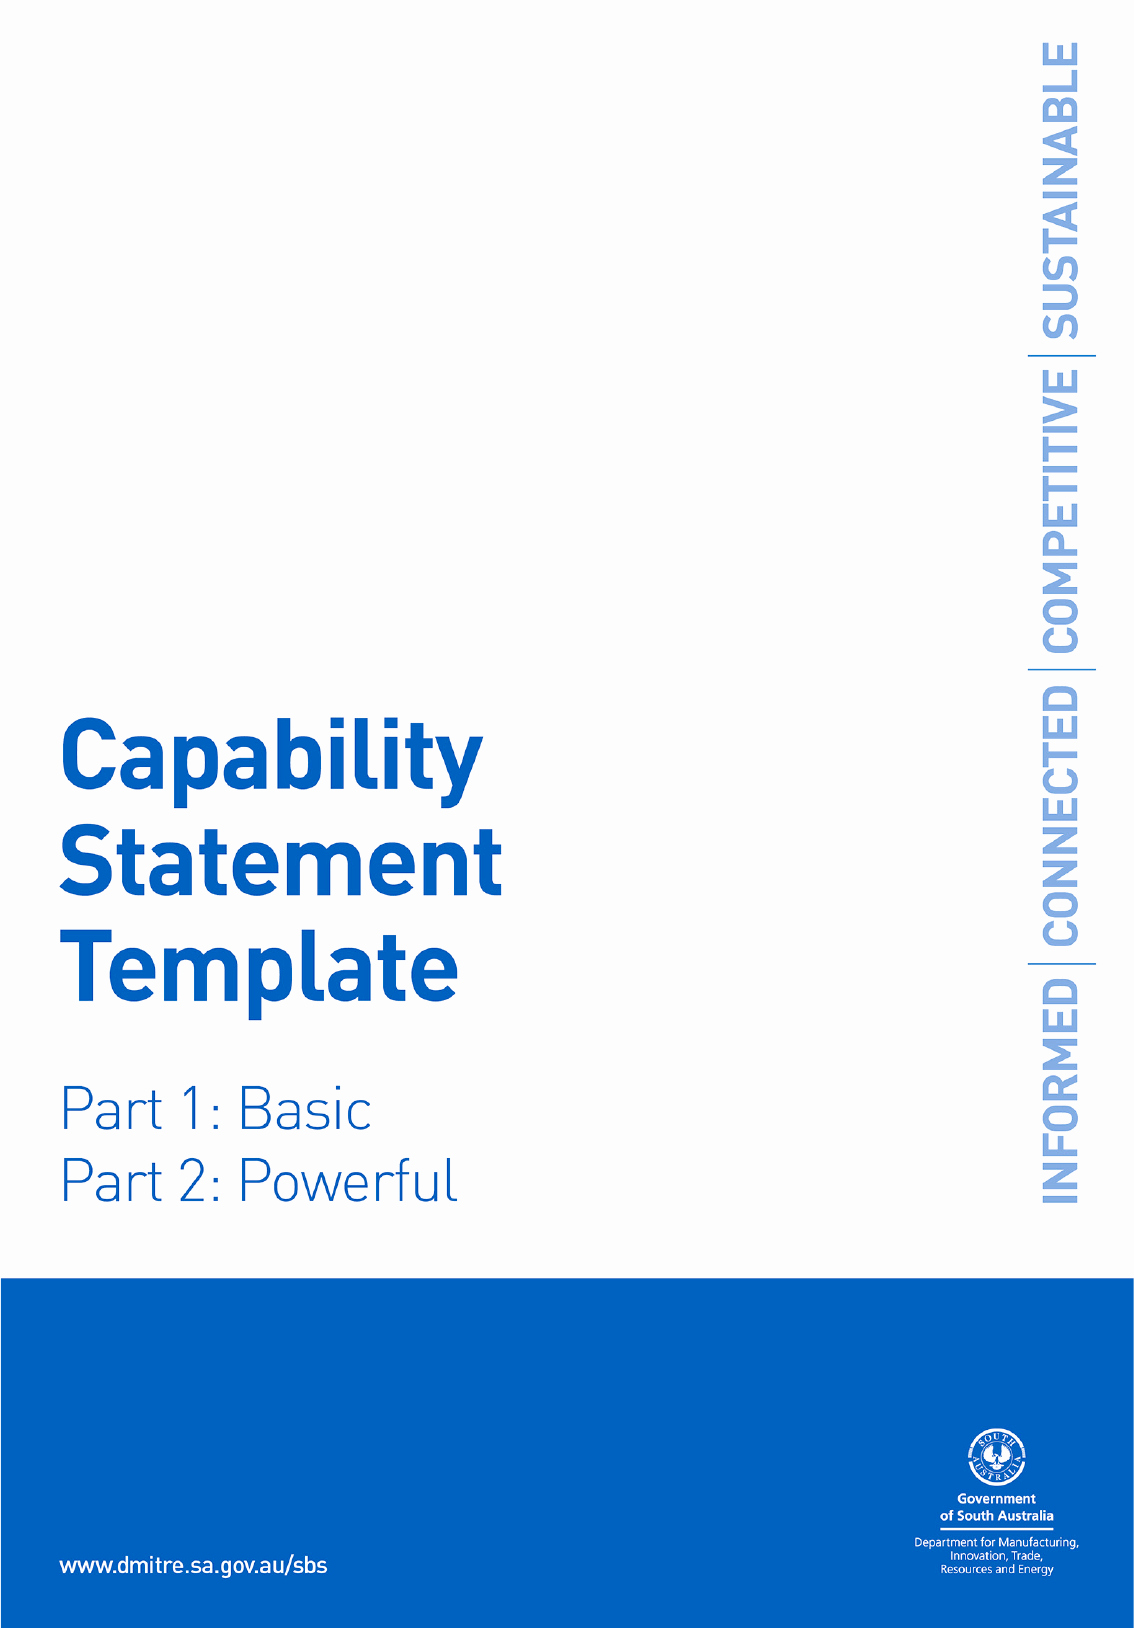 Capability Statement Template In Word and Pdf formats